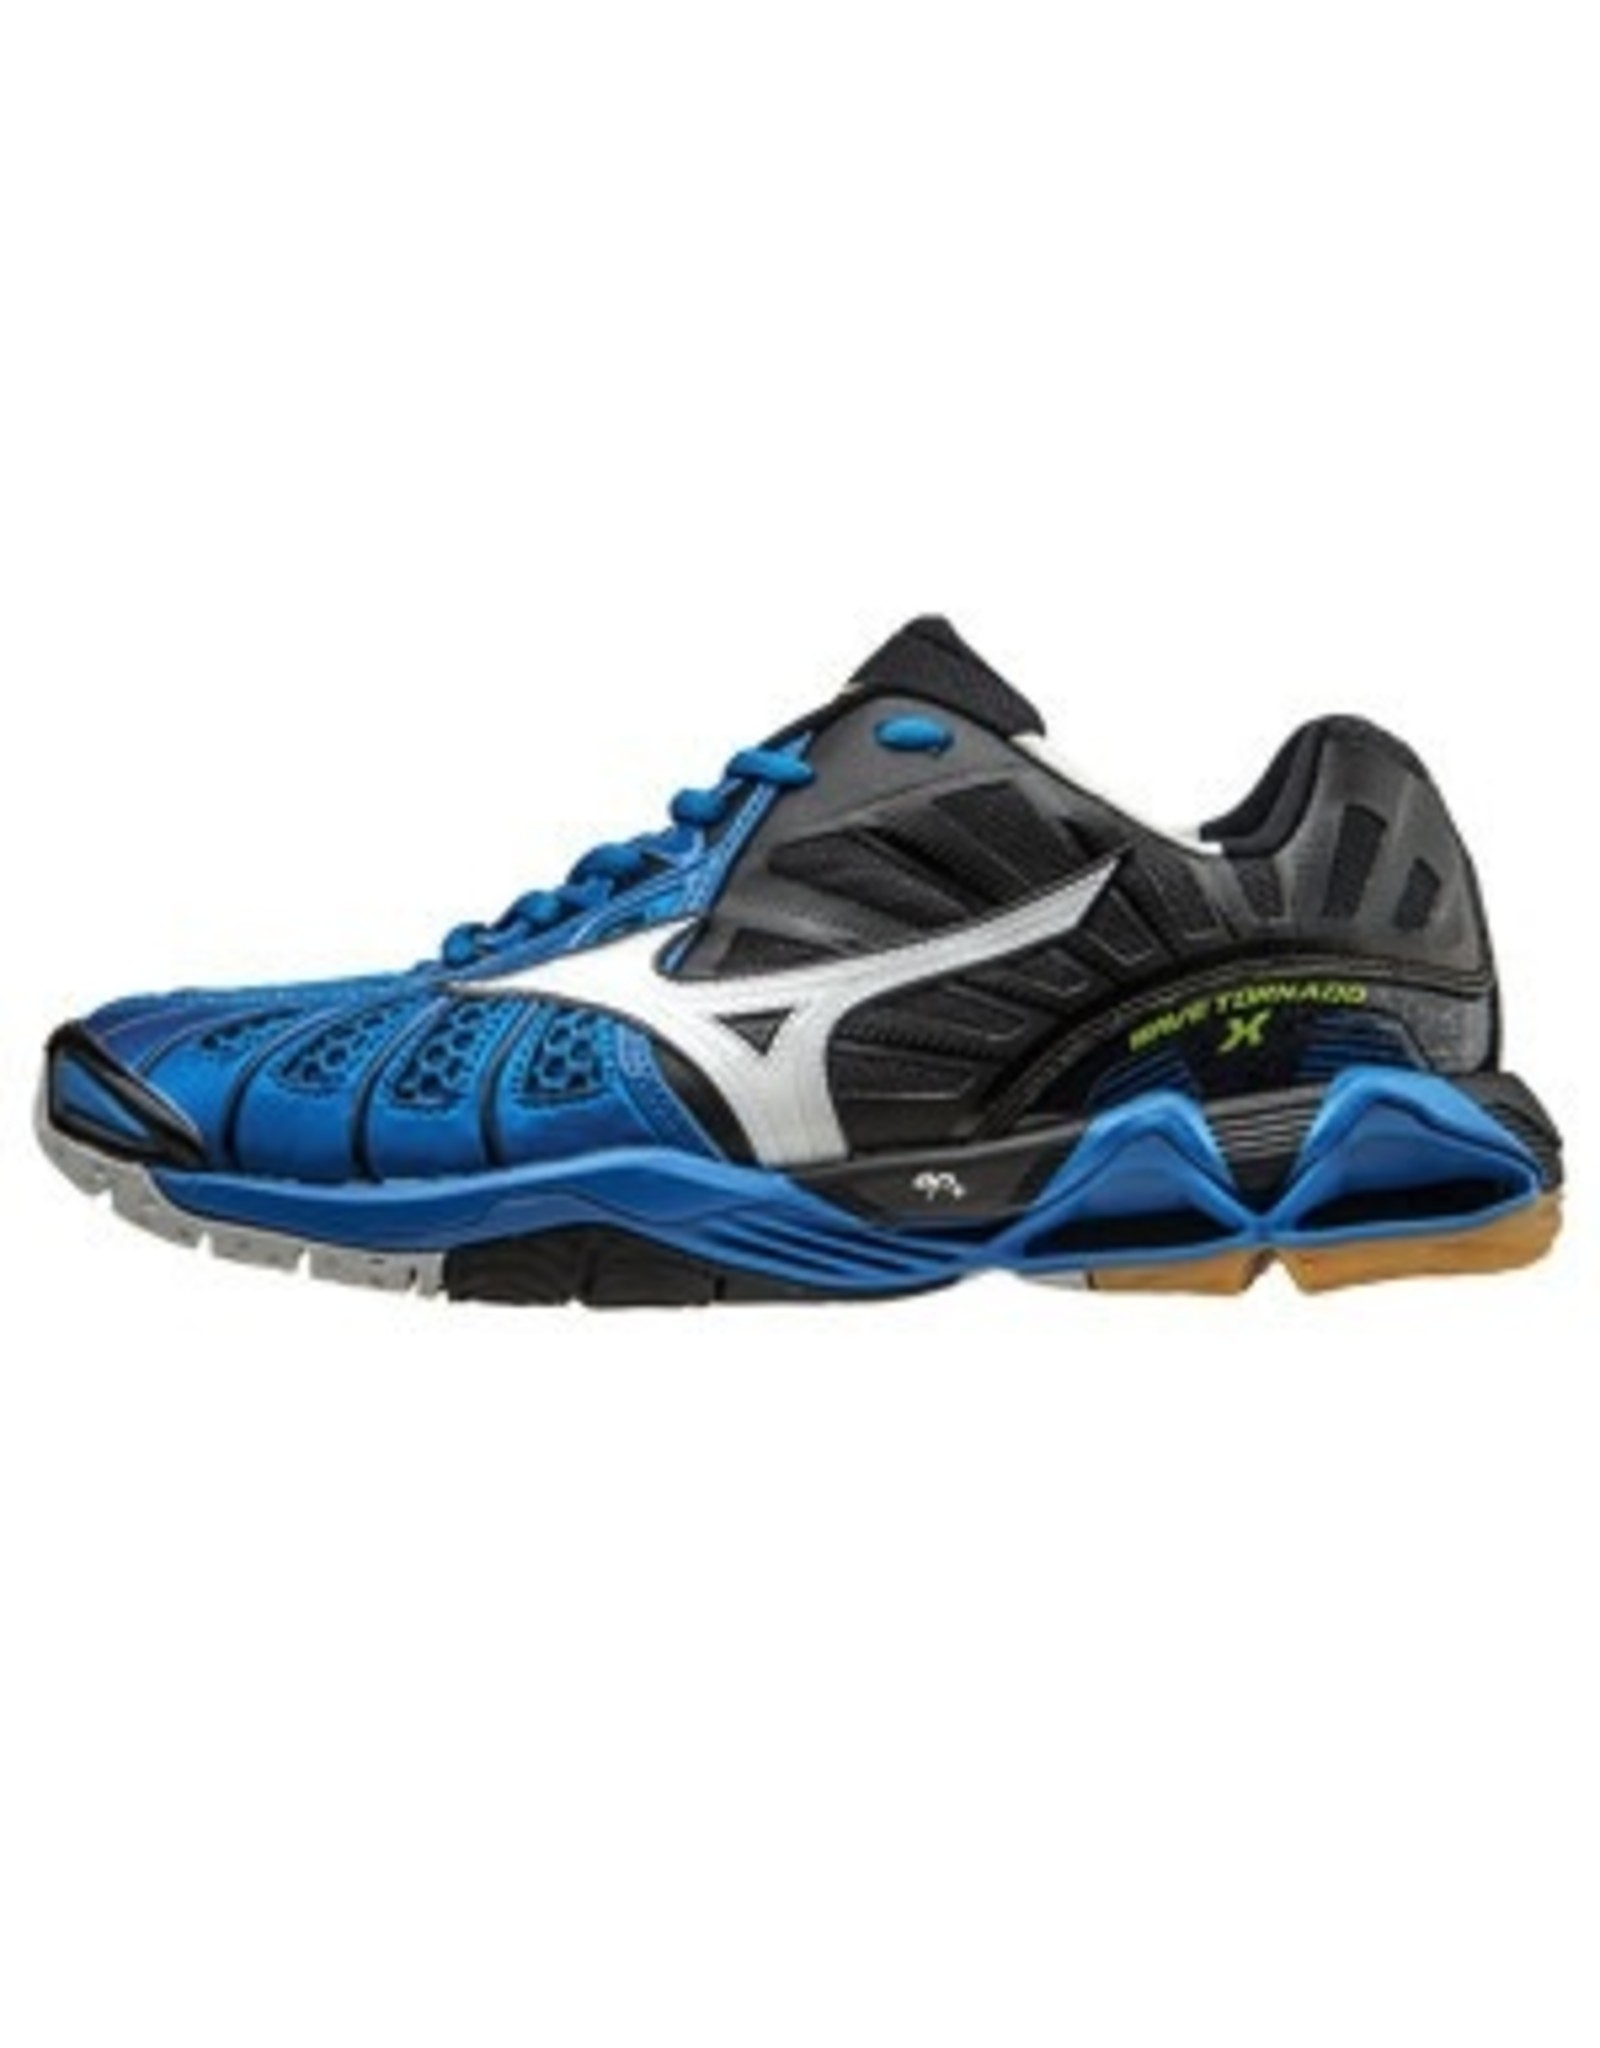 Mizuno The Men's Wave Tornado X offered in a classic low-cut. The Infinity Wave Plate in the shoe's heel offers premium cushioning and shock attenuation for the strenuous jumping and landing that occurs during court play. Ideal for use during both practices and